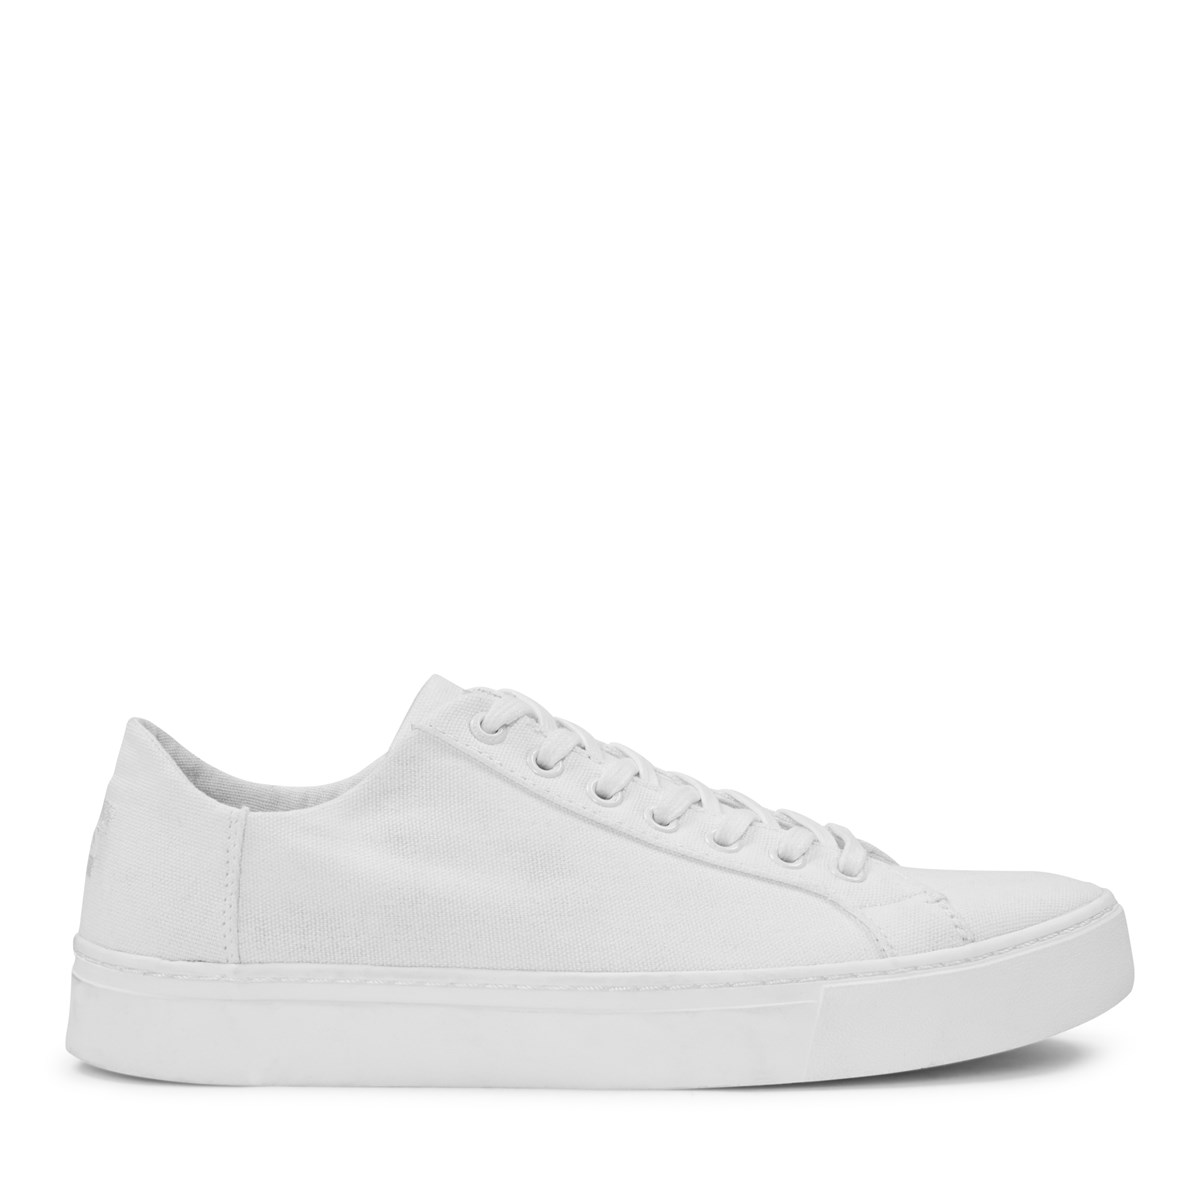 sells cheapest super specials Men's Lenox White Canvas Sneaker